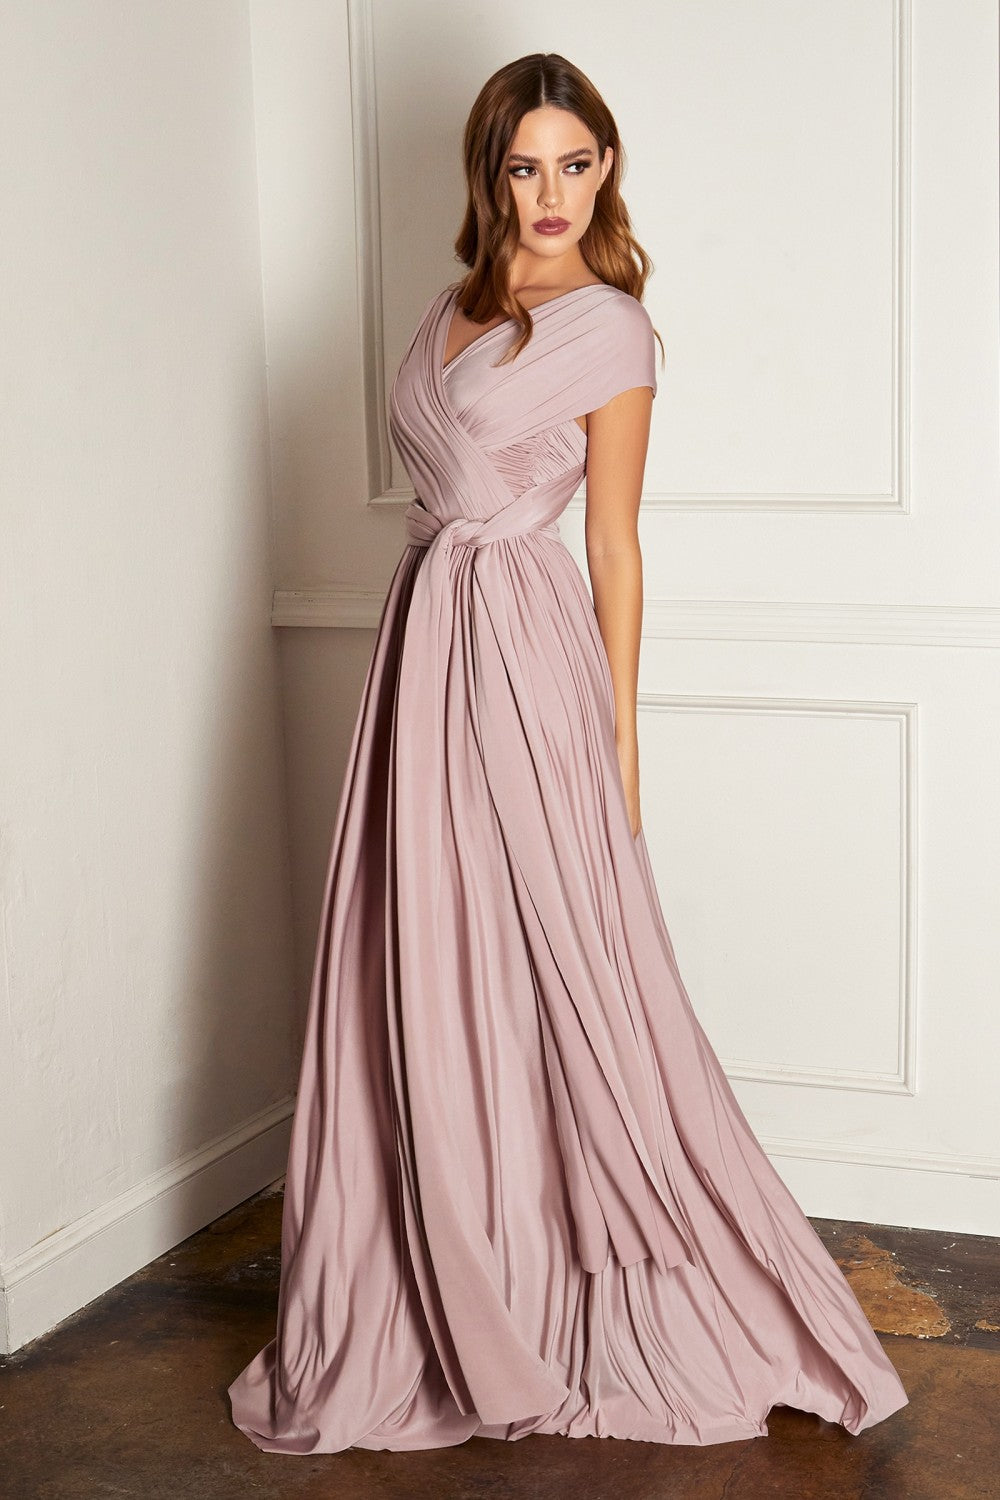 MaryLee Bridesmaid Dress in Mauve Convertible Top MaryLee-C-CVO1PHX-Mauve